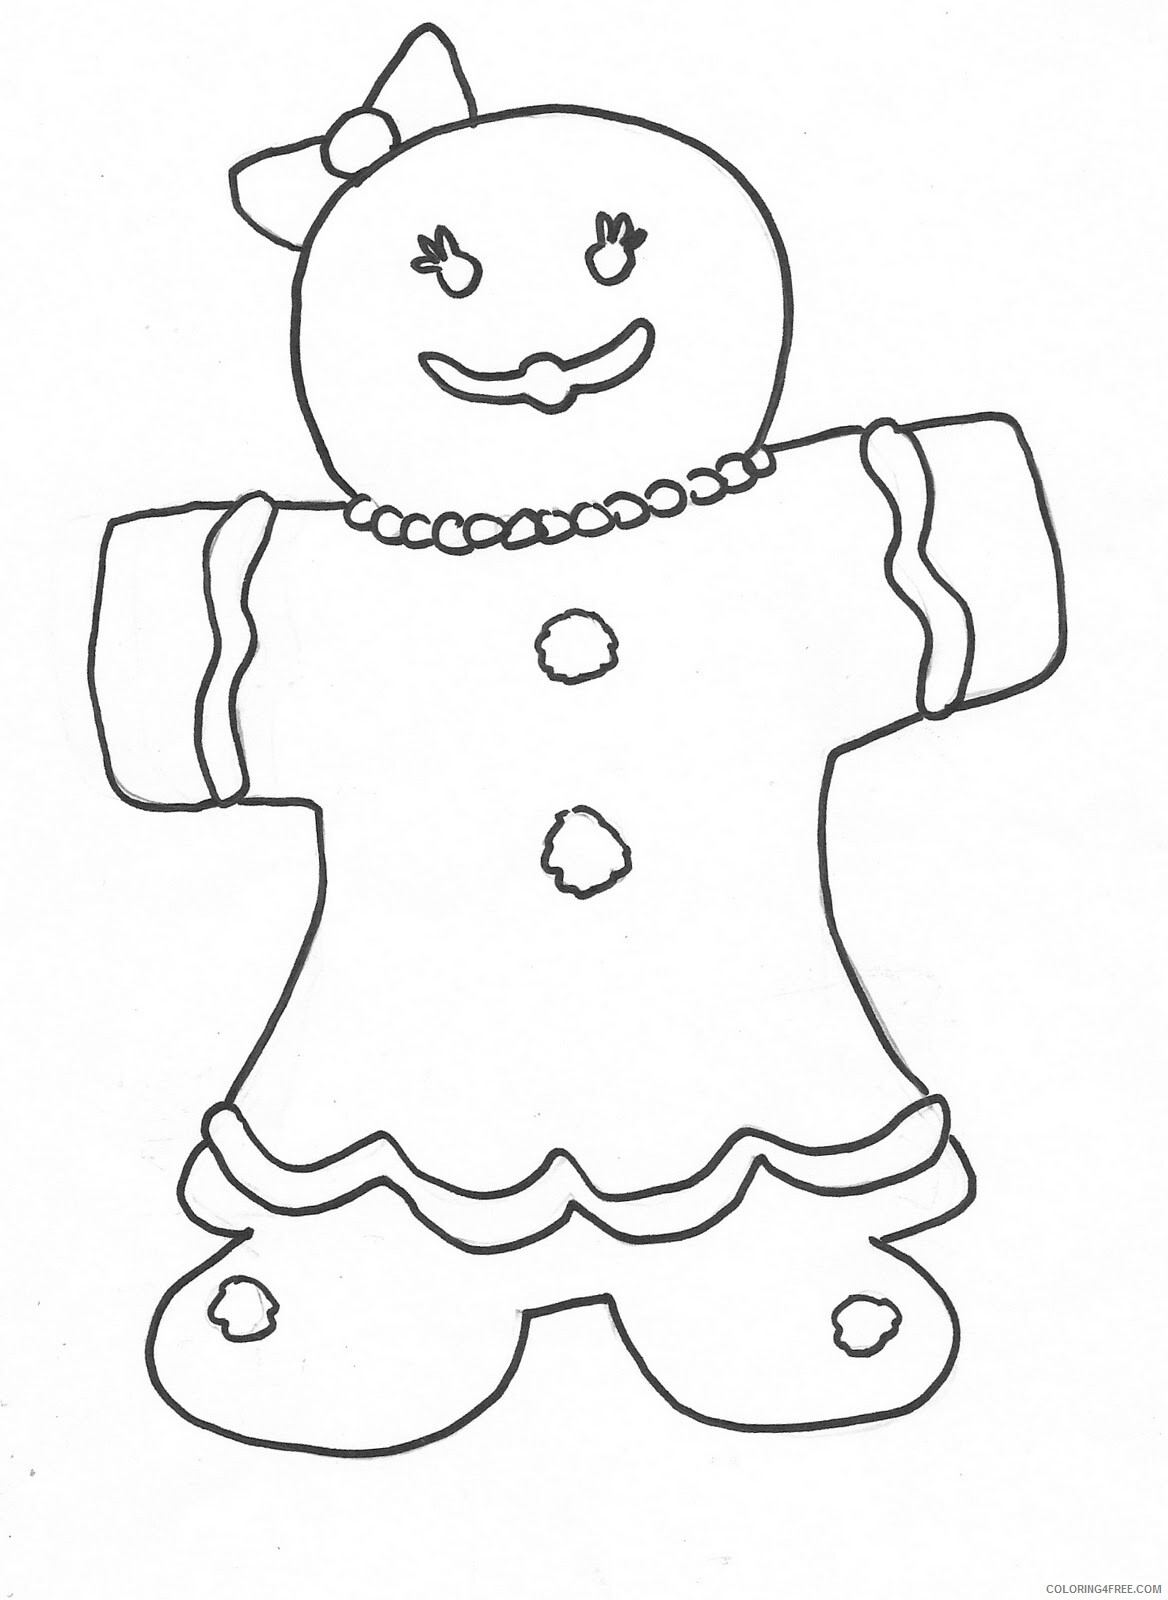 Gingerbread Coloring Pages Gingerbread Man Printable 2021 2892 Coloring4free